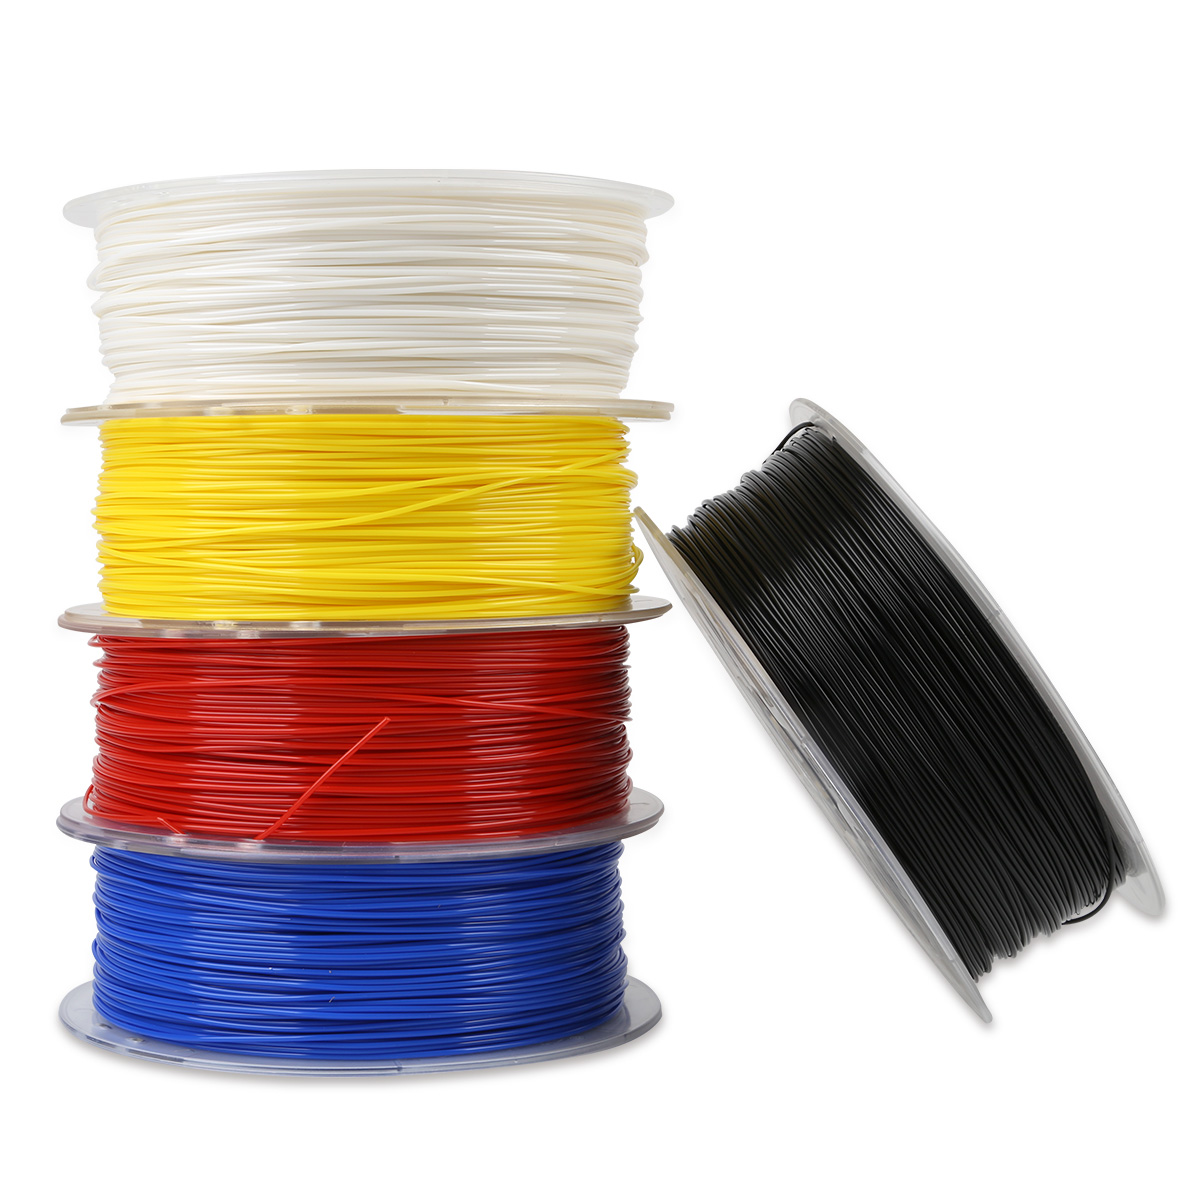 Creality 3D White/Black/Yellow/Blue/Red 1KG 1.75mm PLA